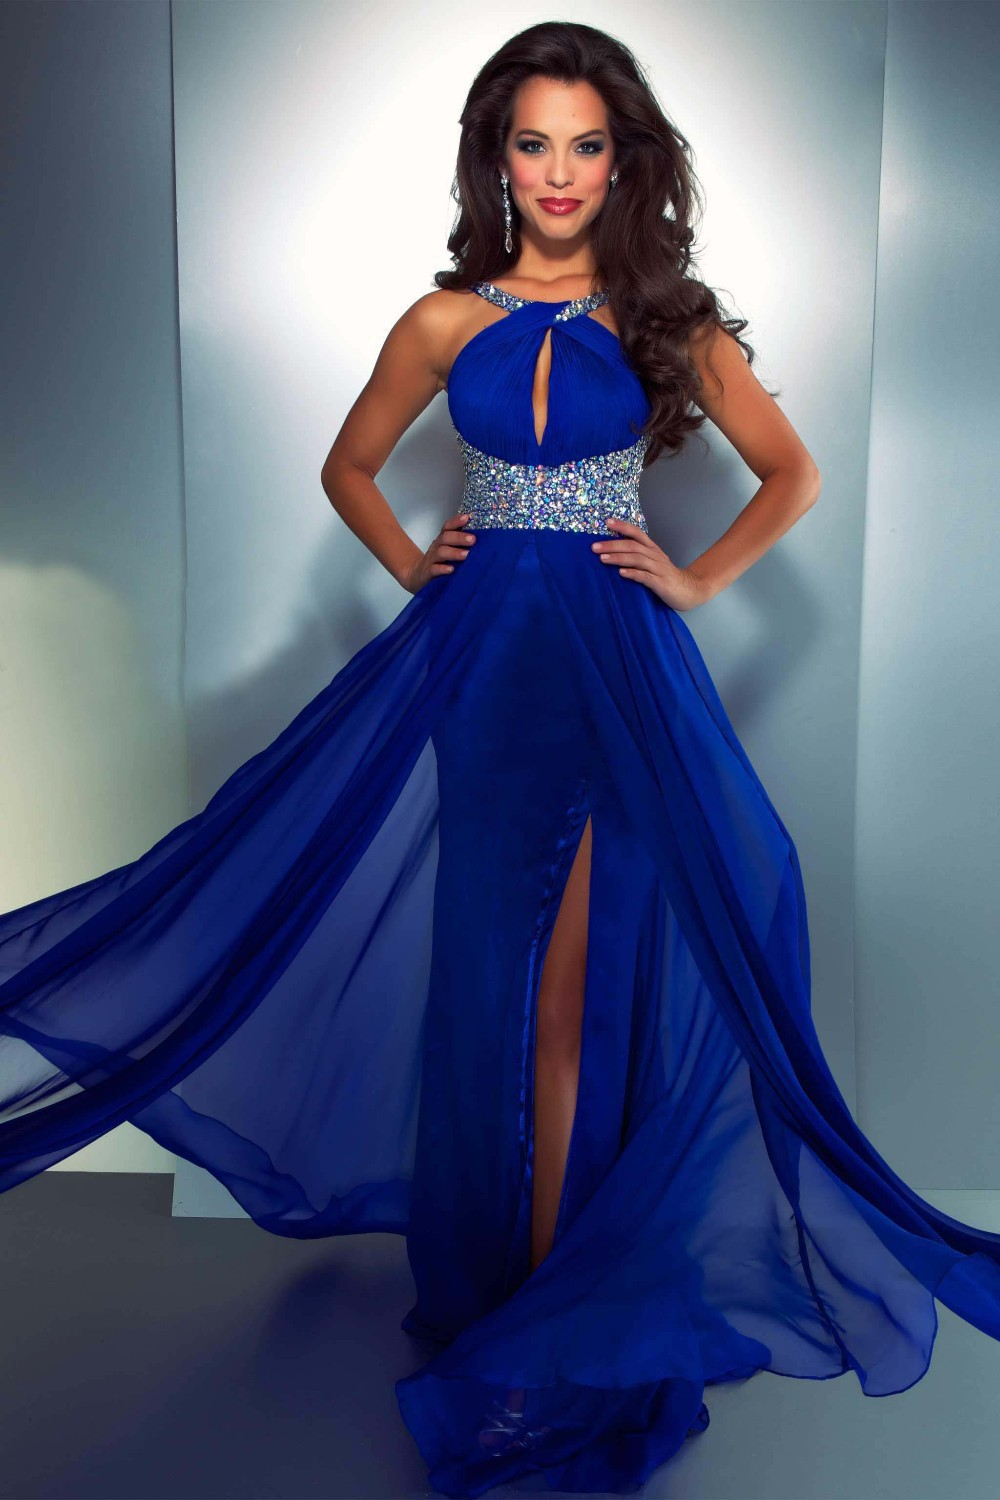 Vintage amp Retro Prom Dresses  From Fit N Flare To Skater